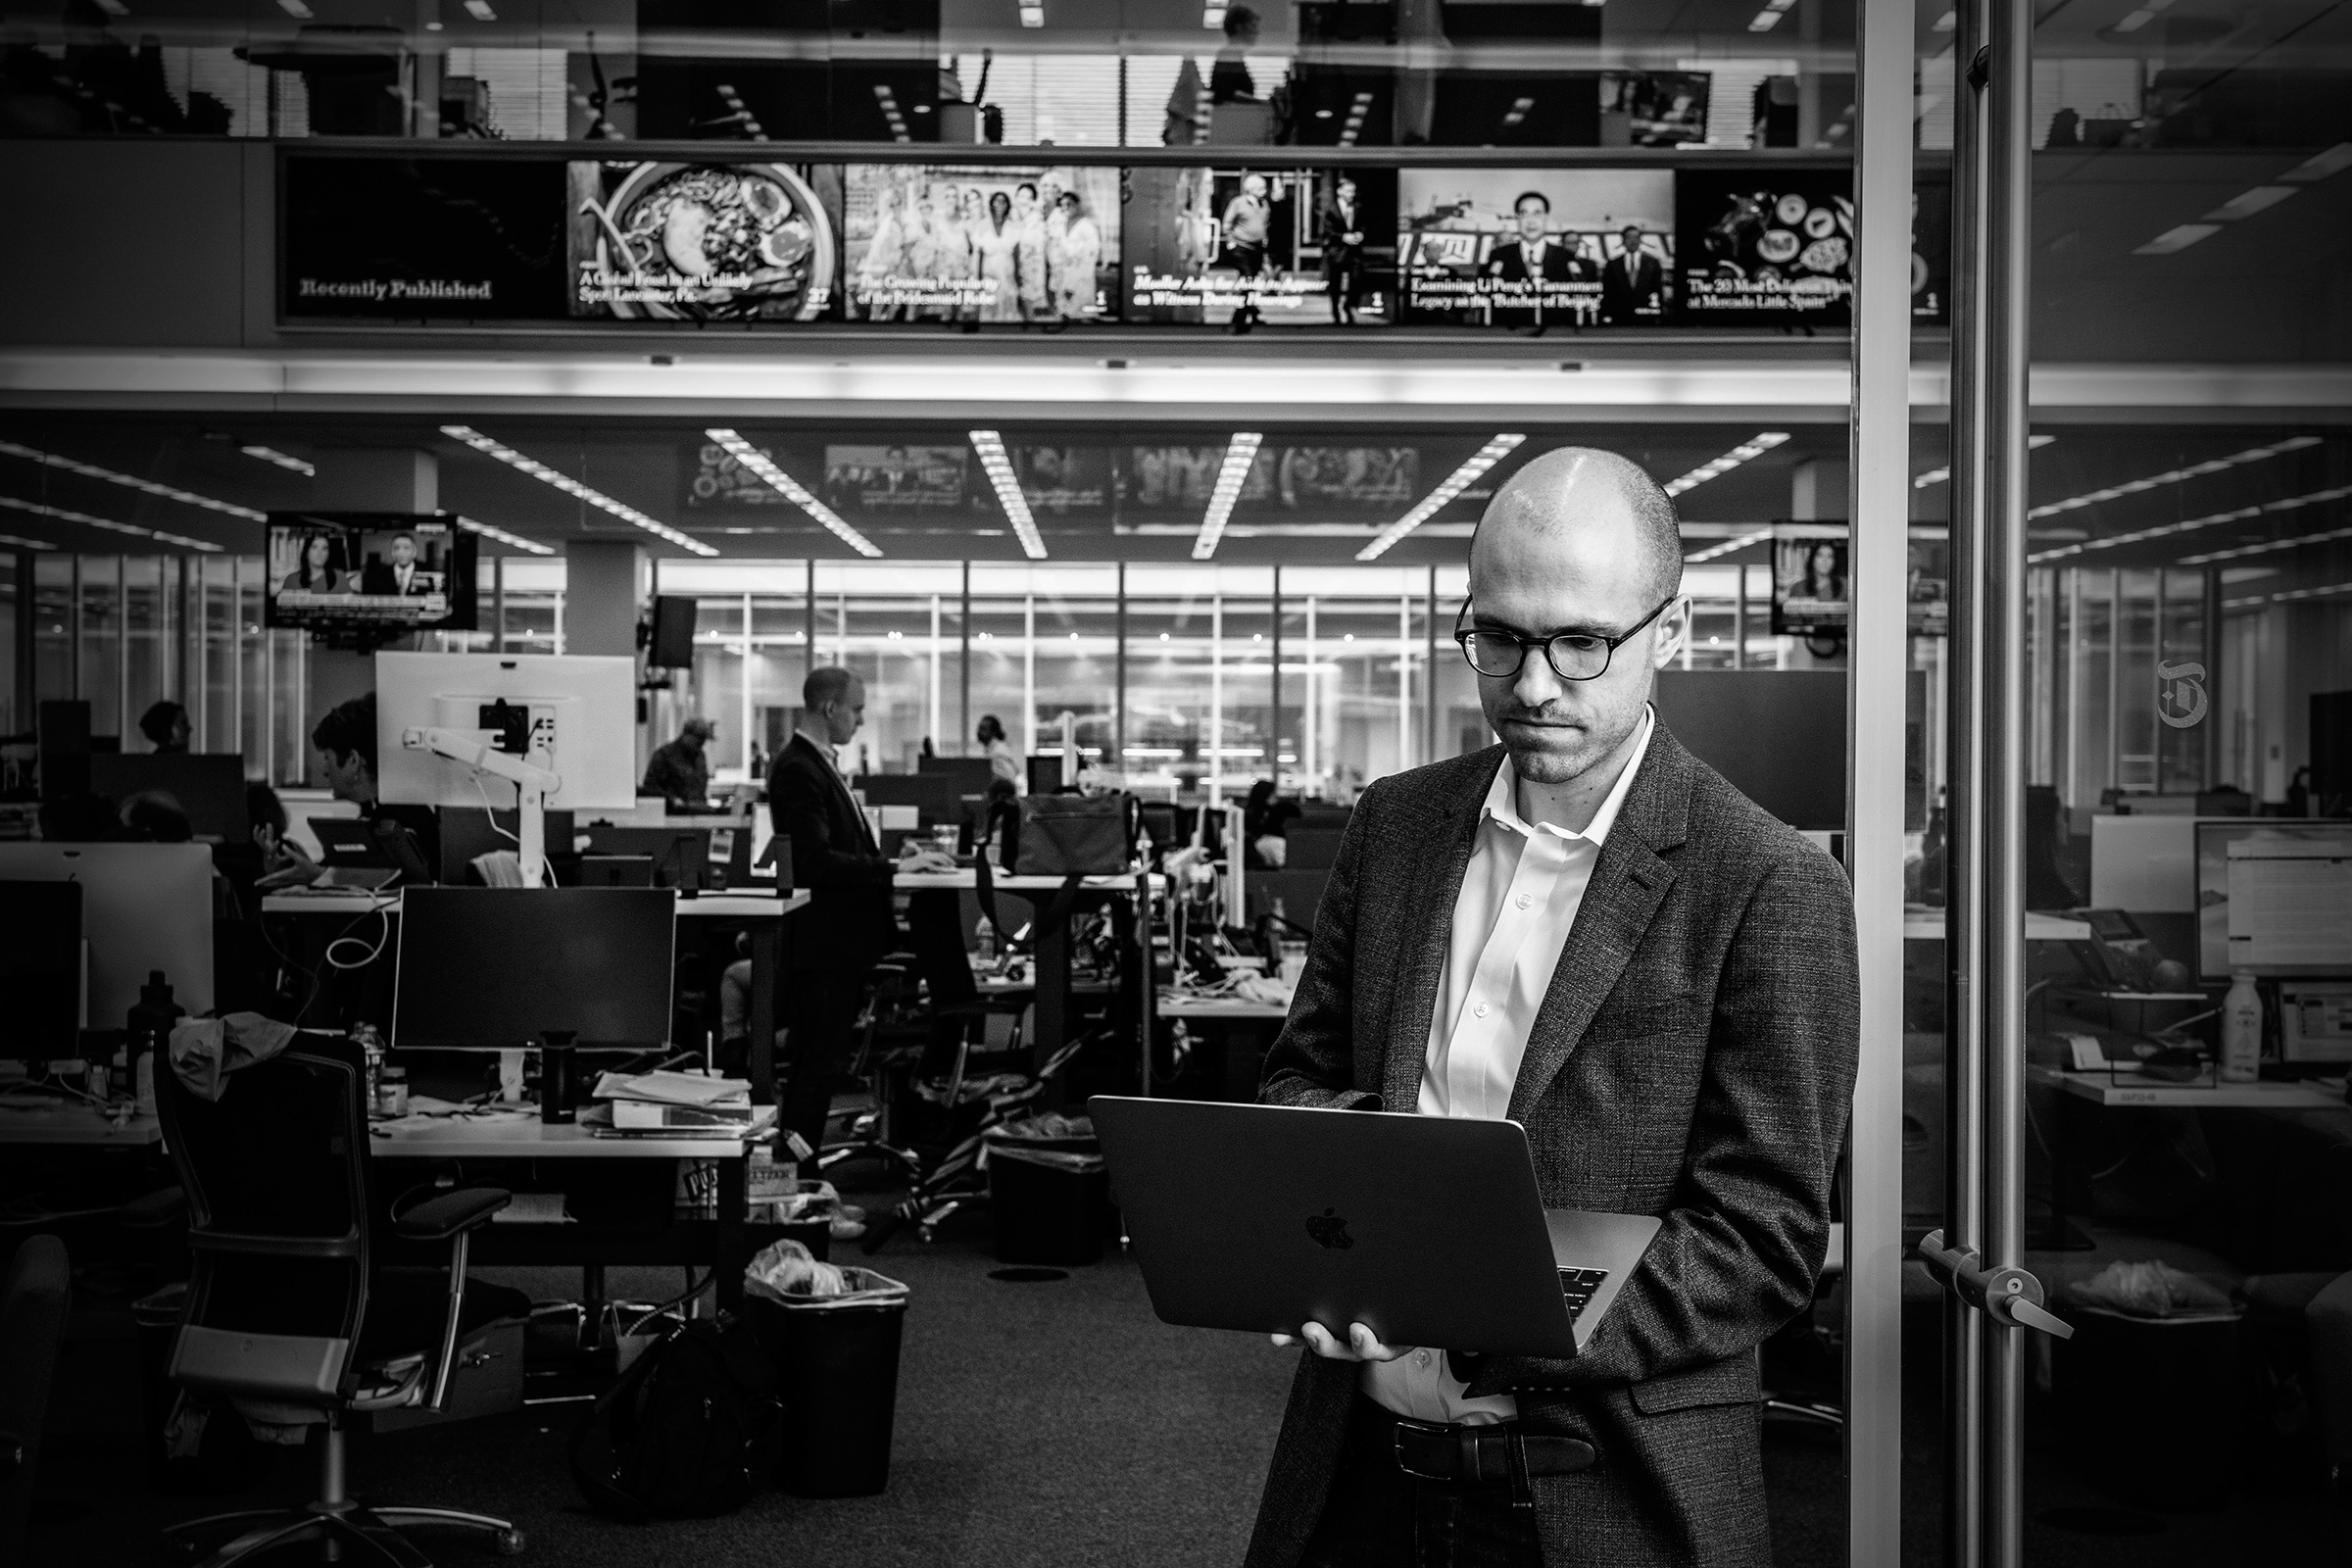 New York Times publisher A.G. Sulzberger in the newsroom